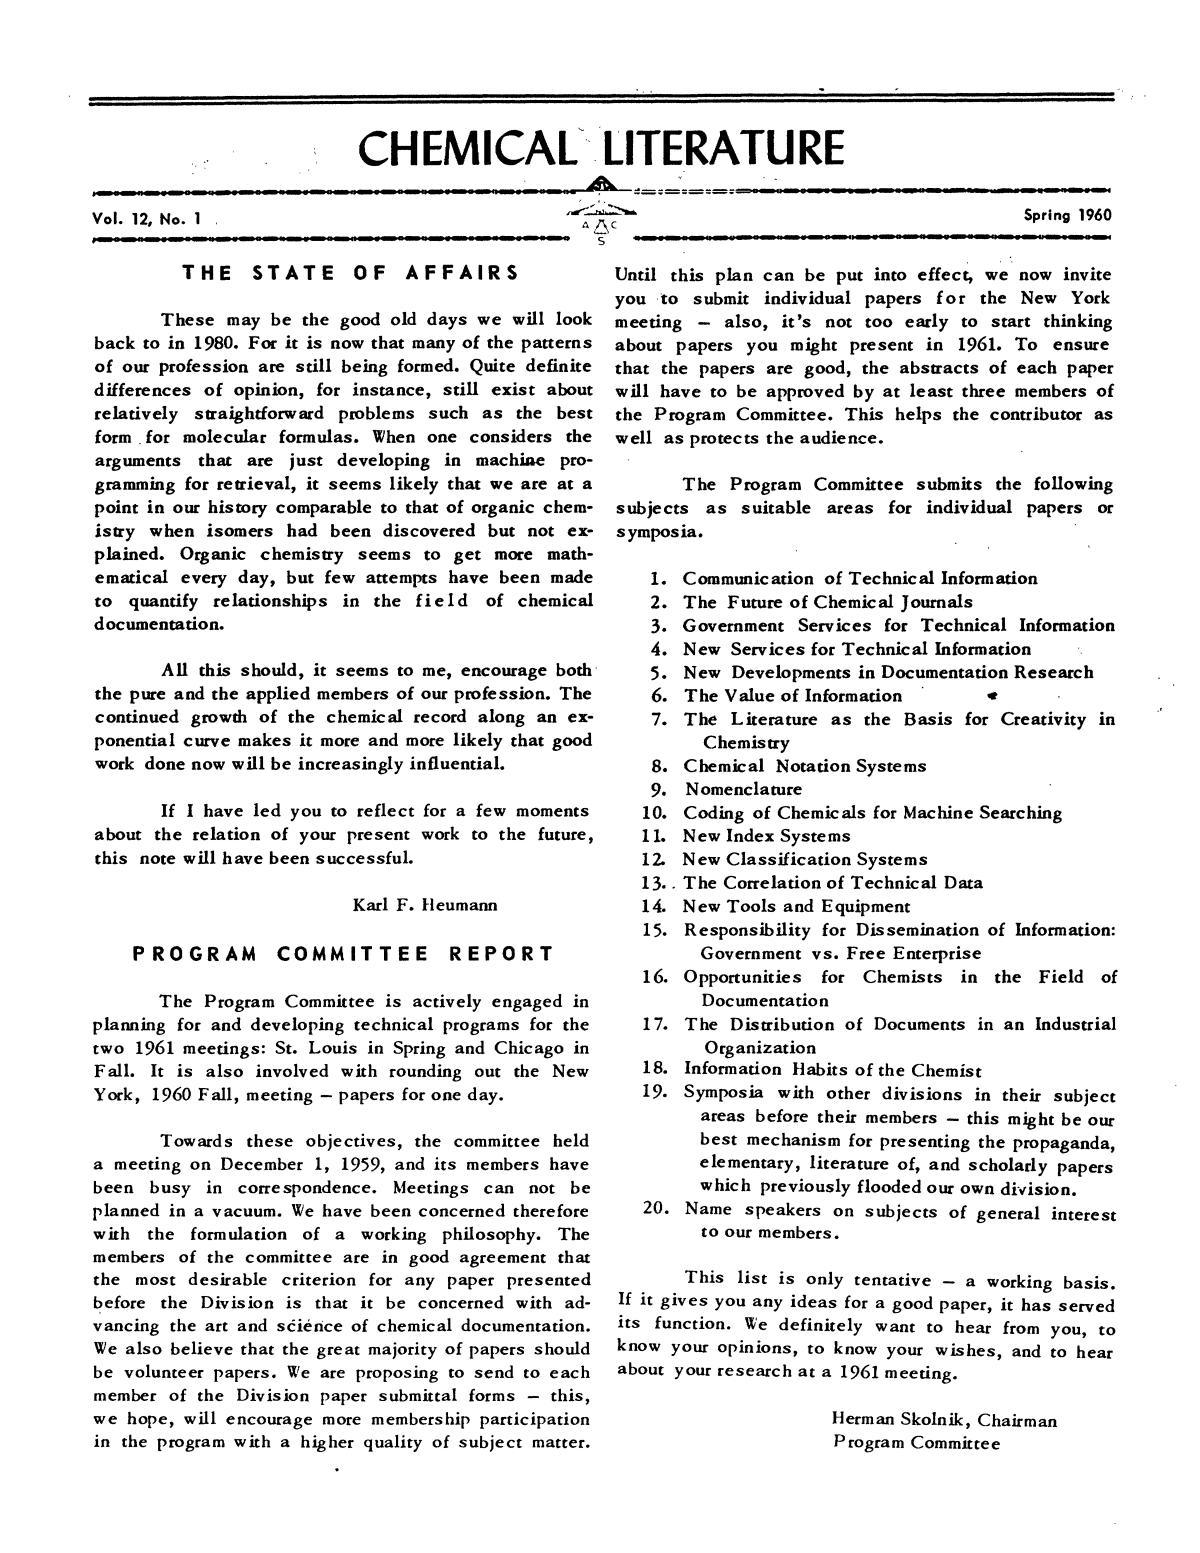 Chemical Literature, Volume 12, Number 1, Spring 1960                                                                                                      1